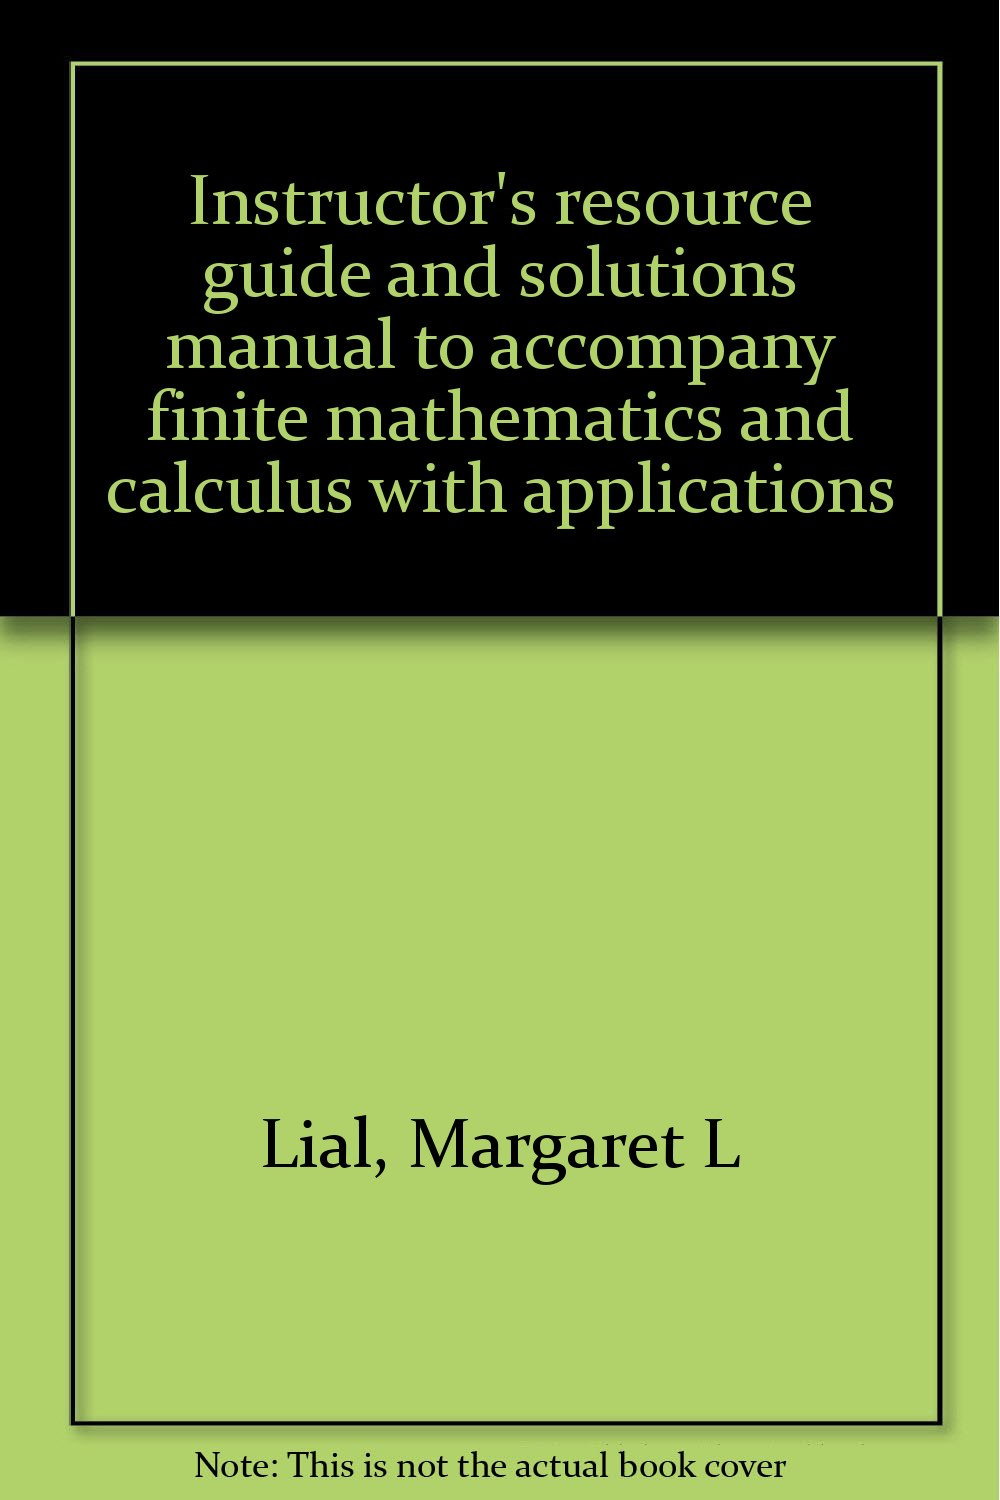 Instructor's resource guide and solutions manual to accompany finite  mathematics and calculus with applications: Margaret L Lial: 9780321028679:  Amazon.com: ...